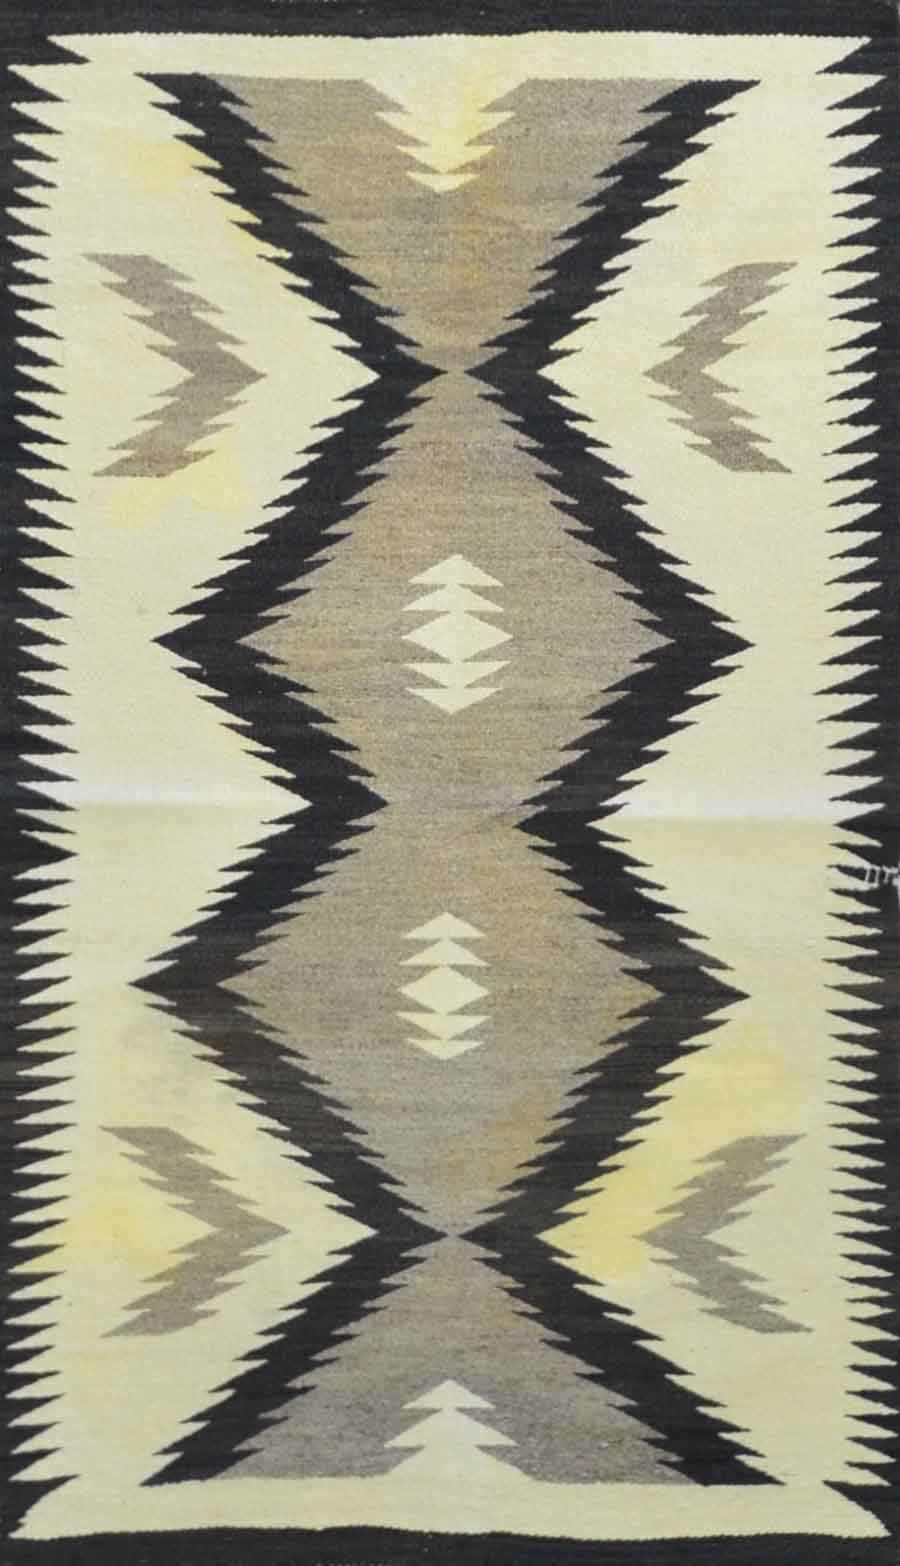 Handmade Old American Indian Navajo Rug Cc1868 On Sale At Carpet